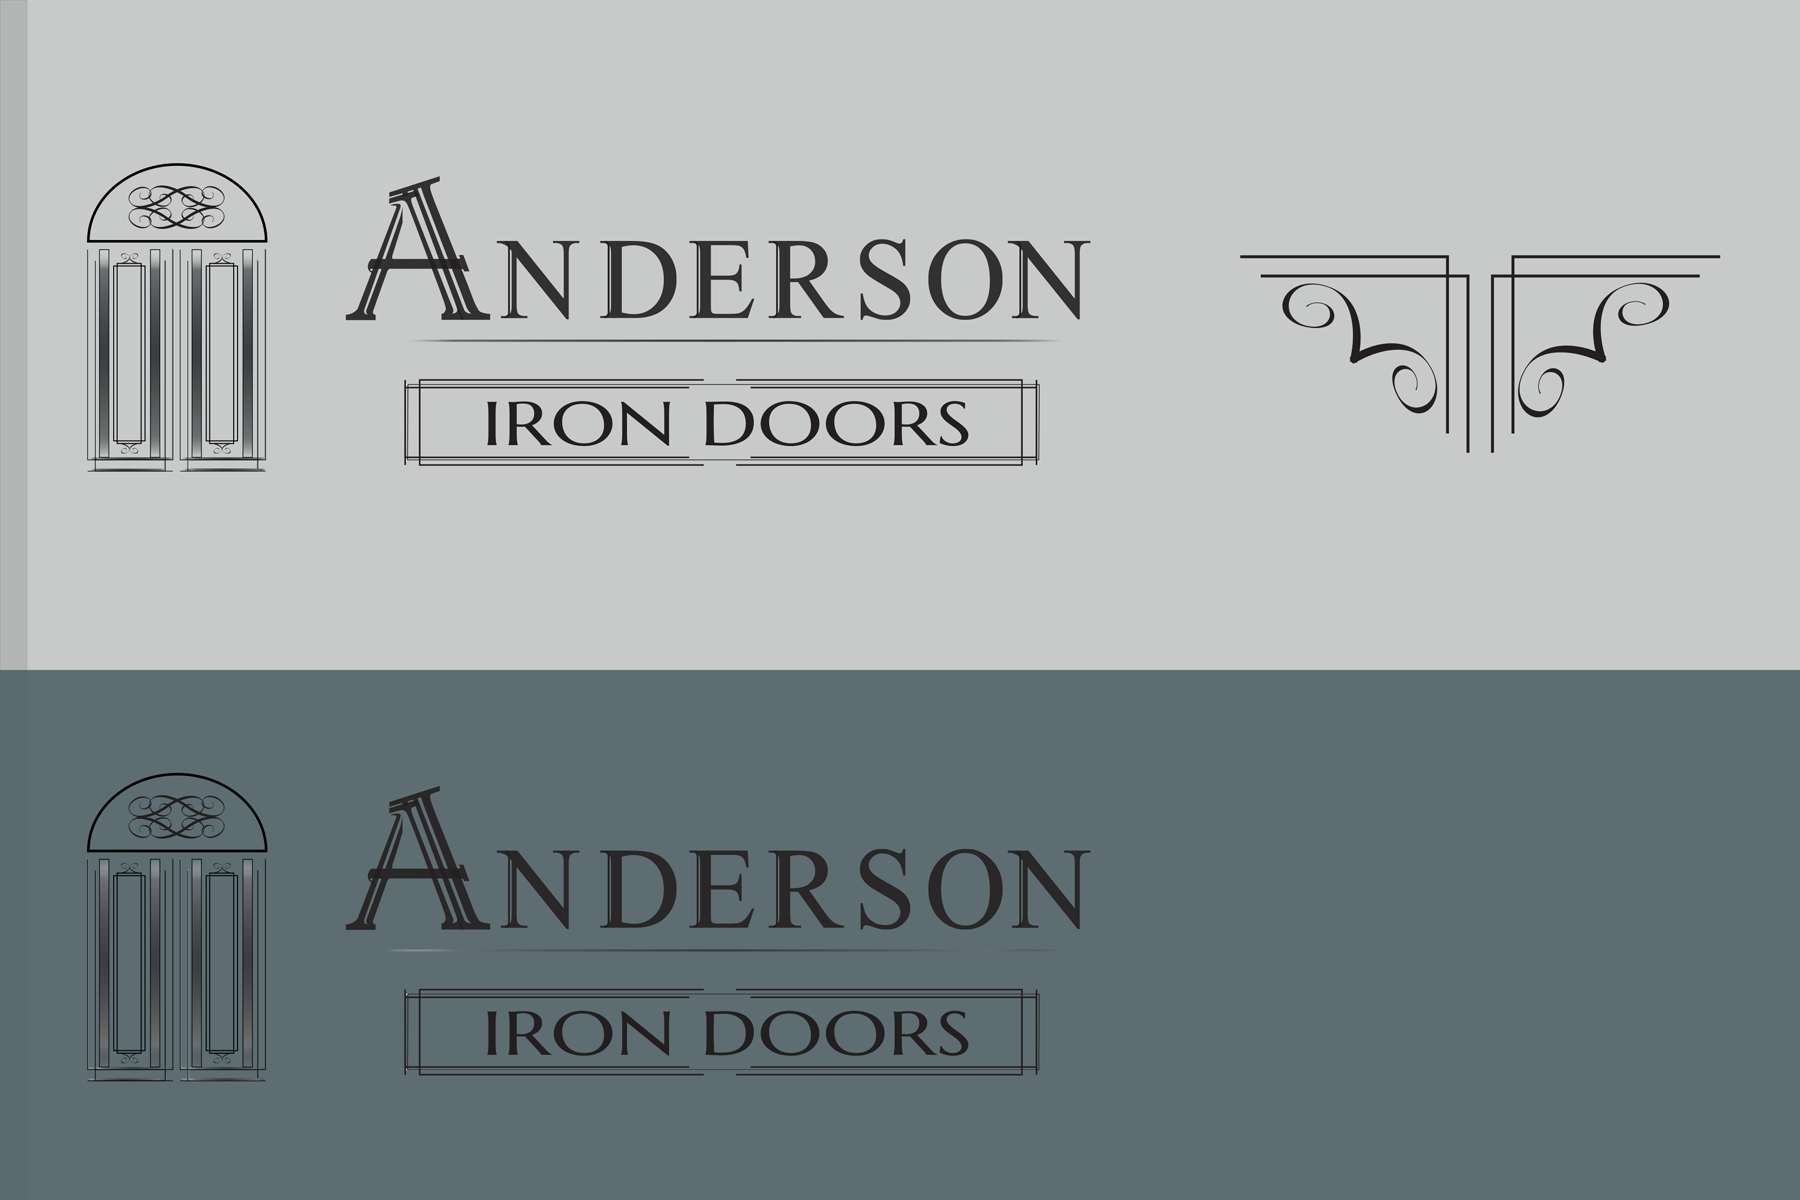 Logo Design by Rozsa Matyas - Entry No. 42 in the Logo Design Contest Artistic Logo Design for Anderson Iron Doors.